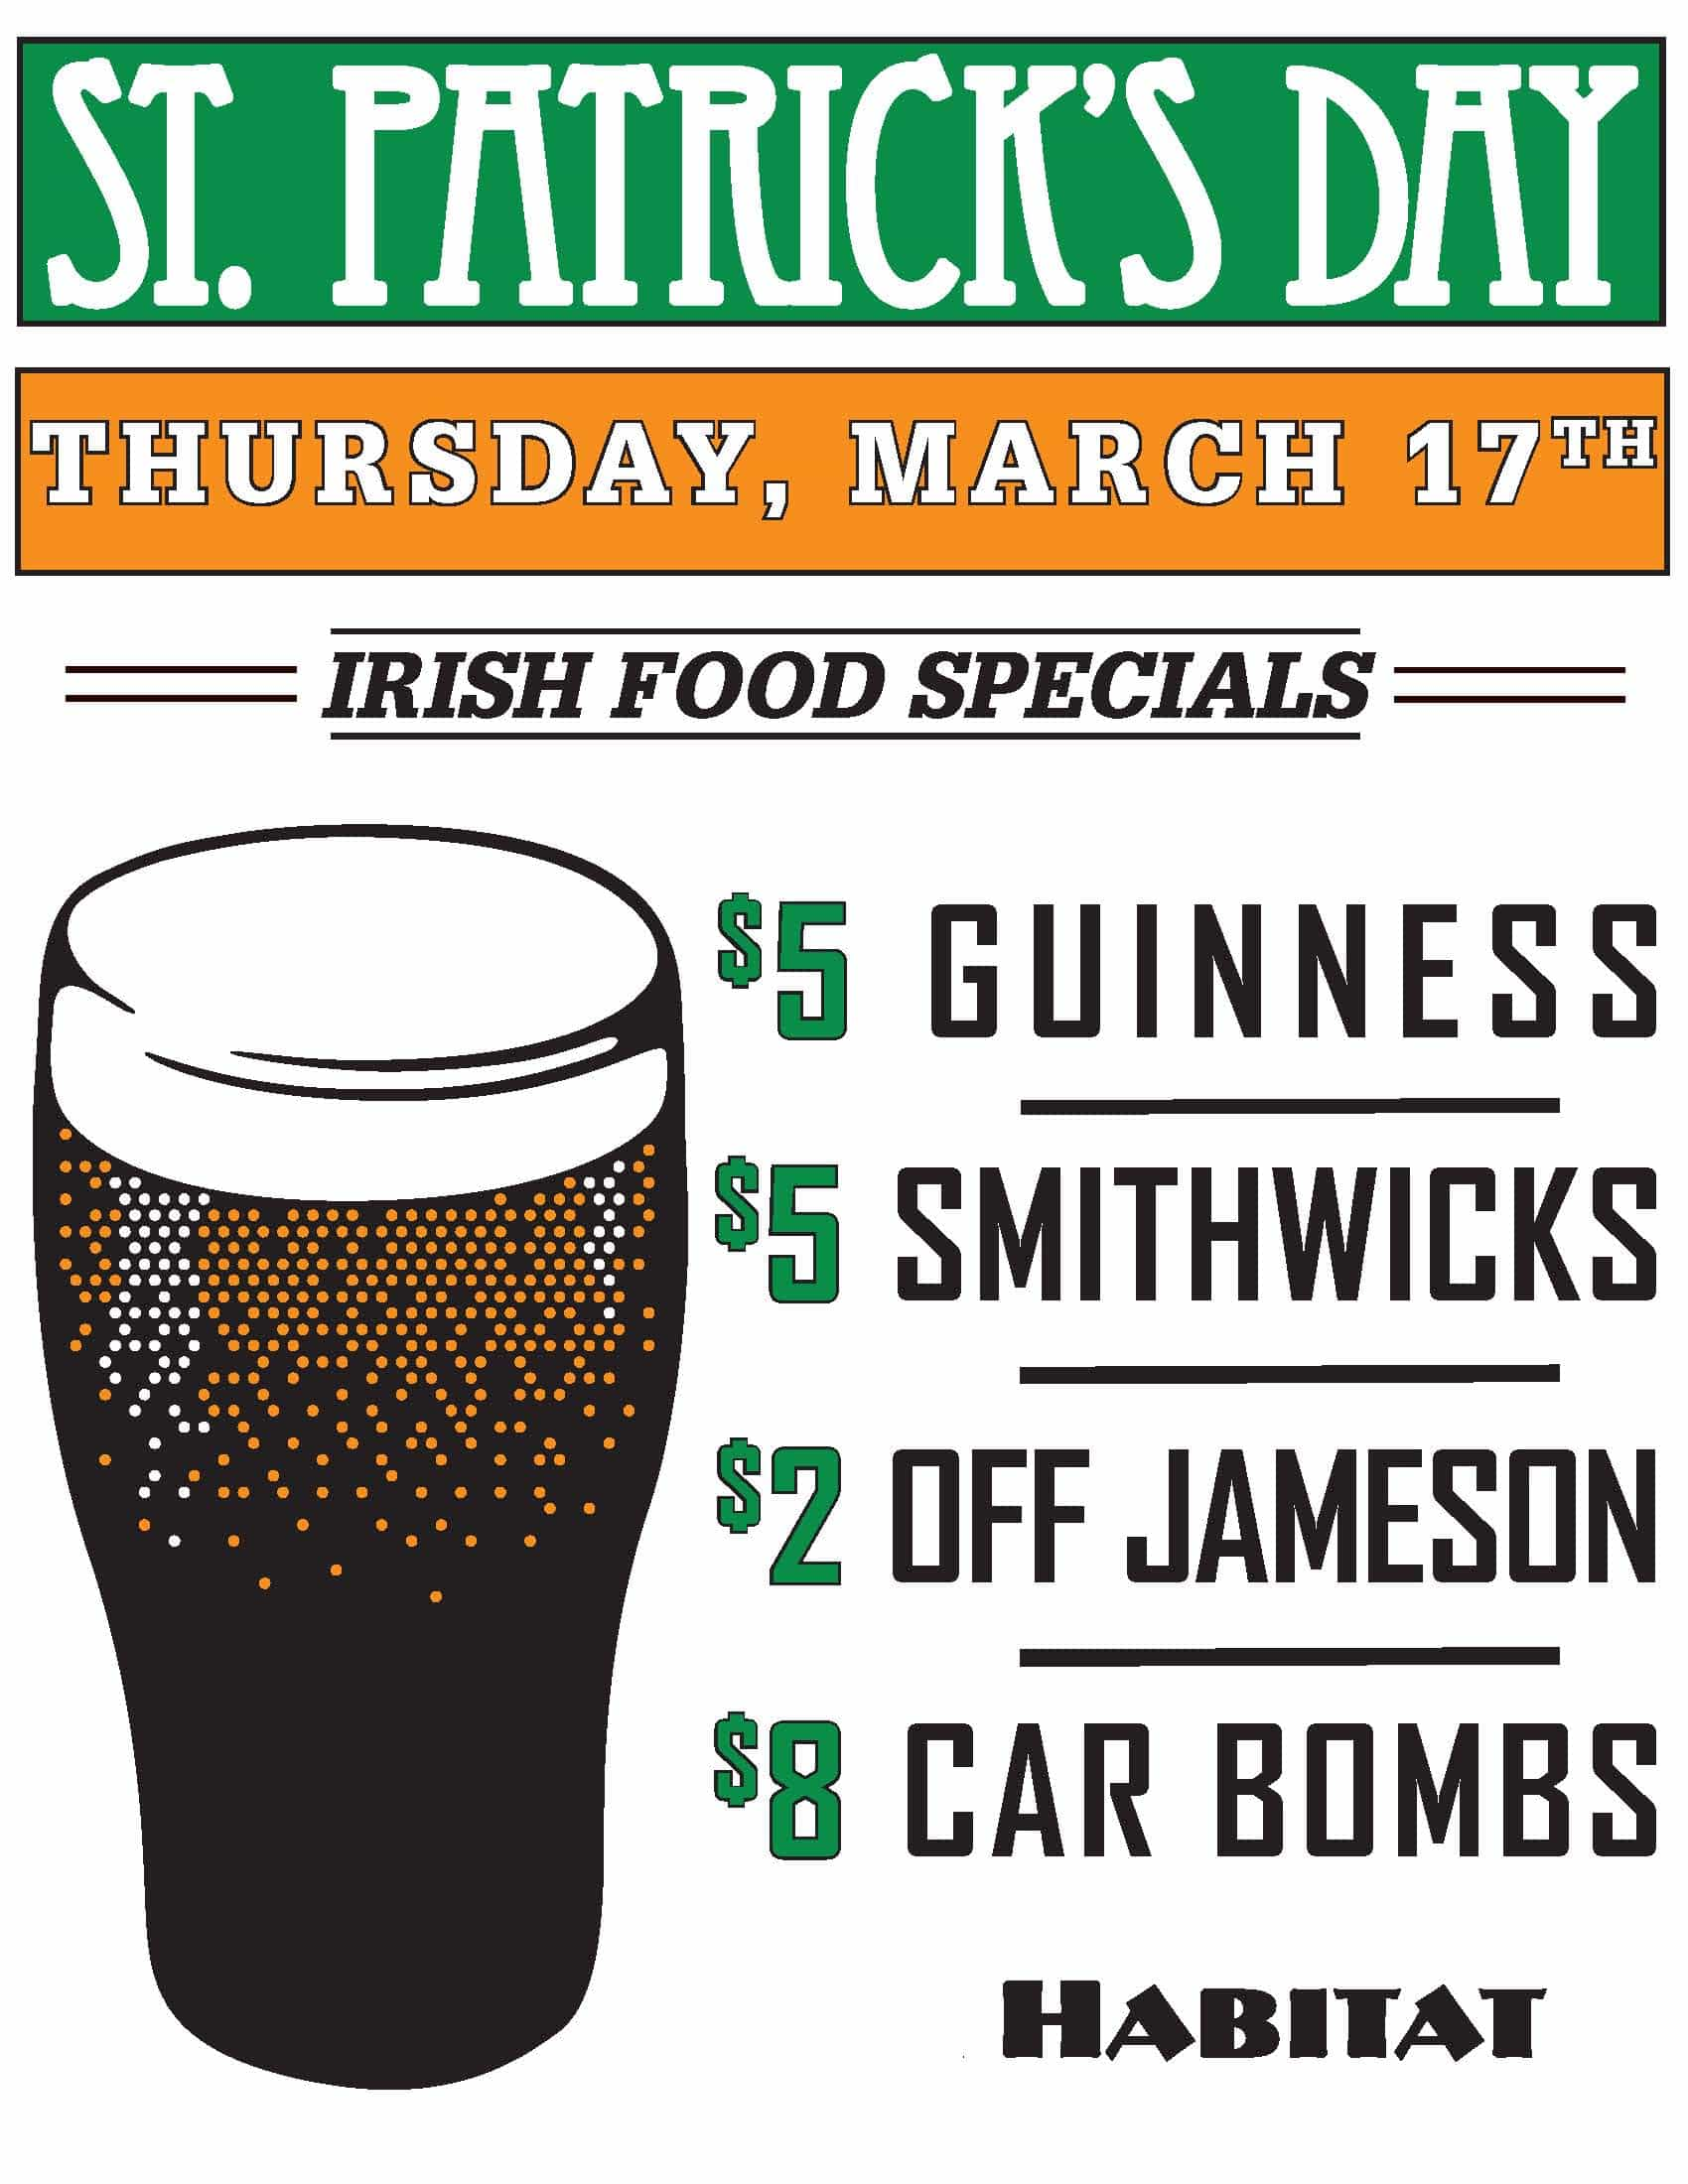 Poster detailing St Patrick's Day specials at Habitat